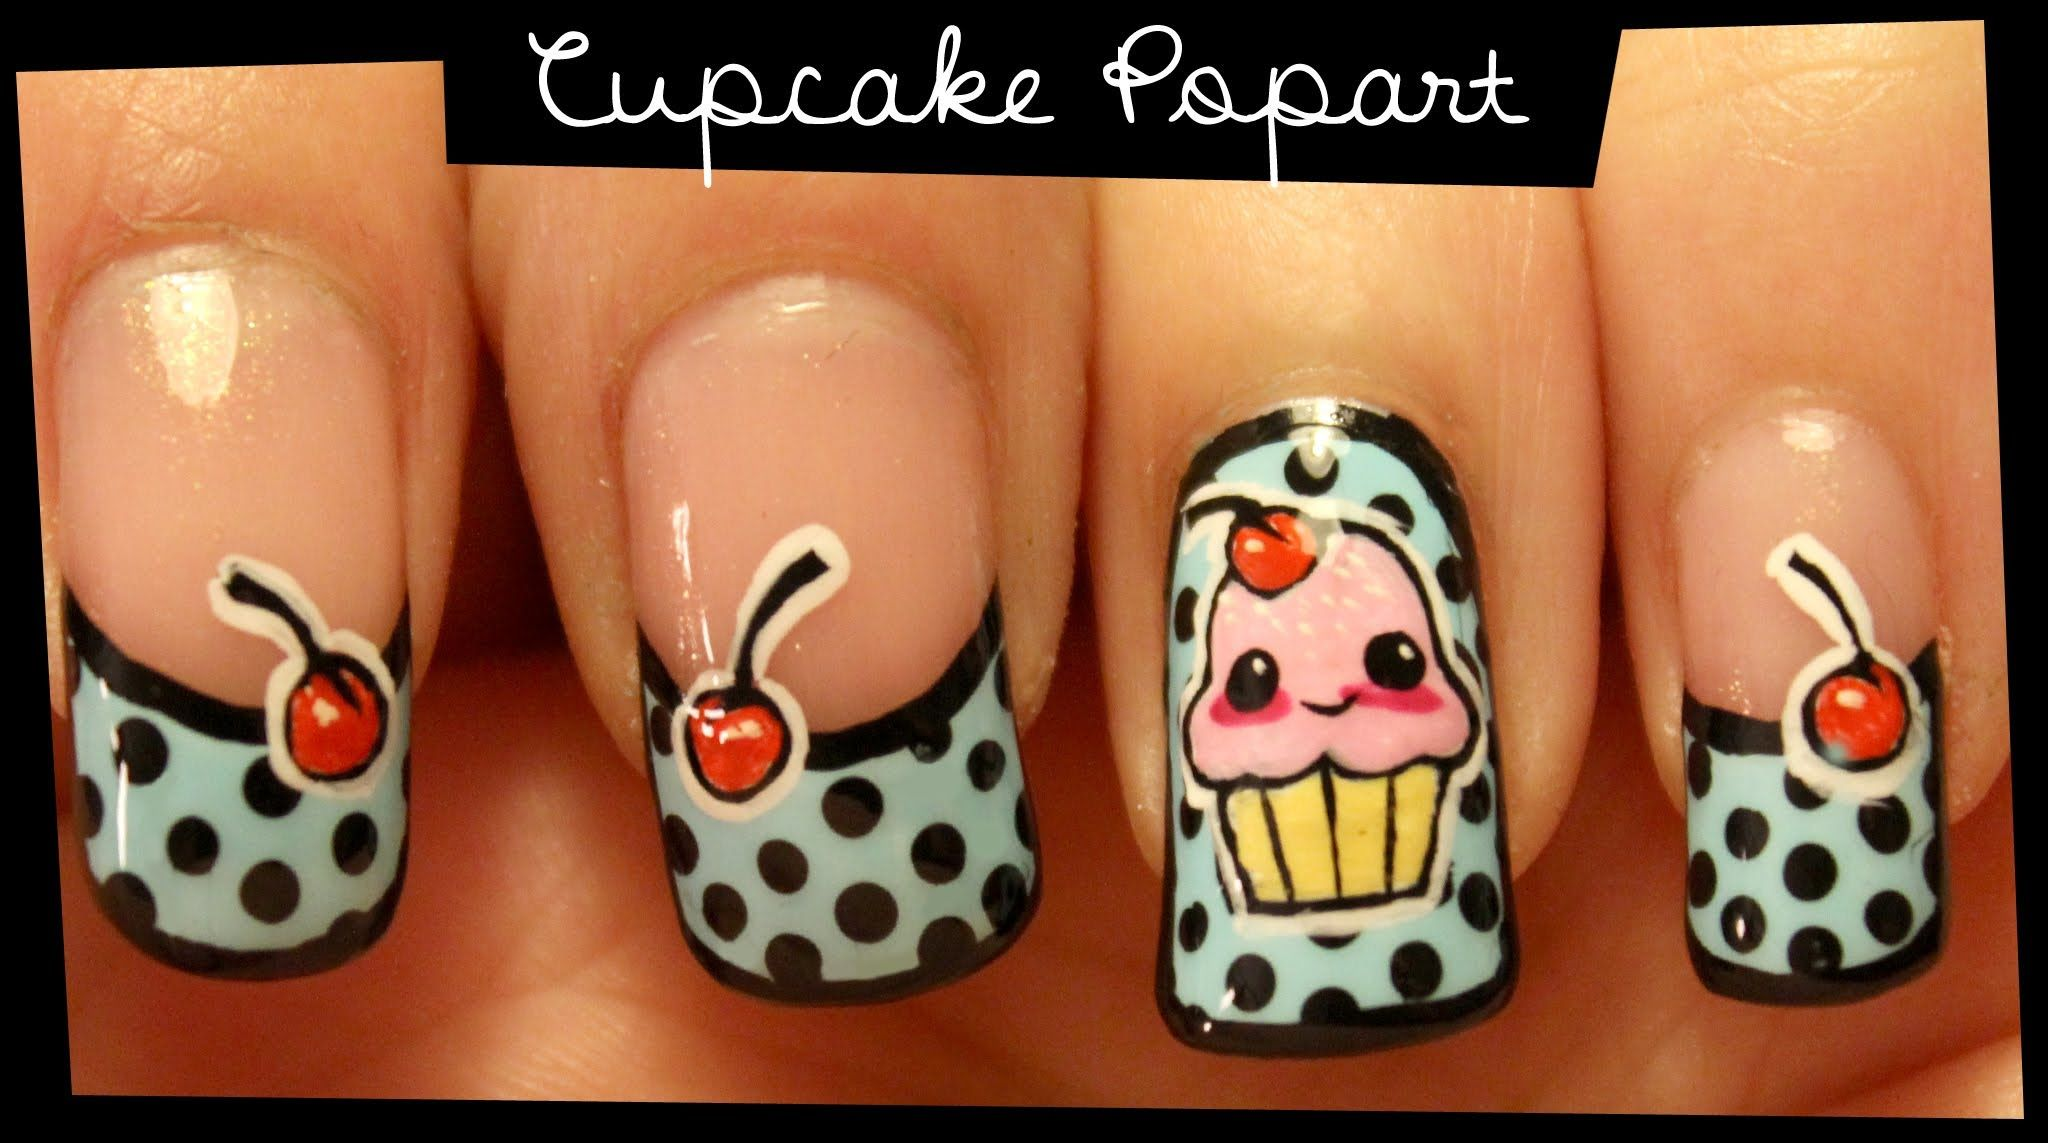 How to paint cupcake popart nail art manicure at home step by step cupcake popart nail art no stickers solutioingenieria Images